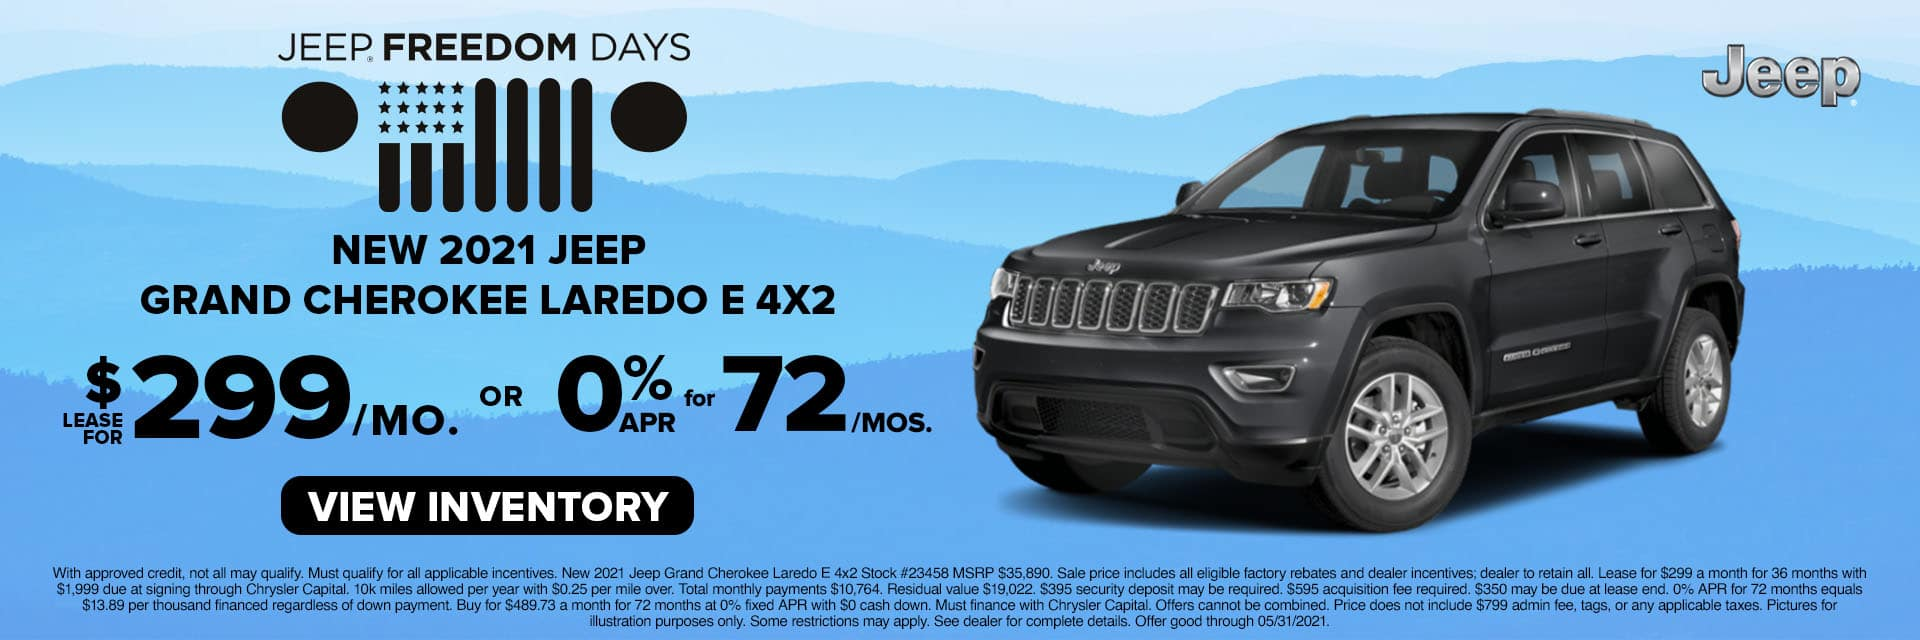 CLCP-May 2021-2021 Jeep Grand Cherokee